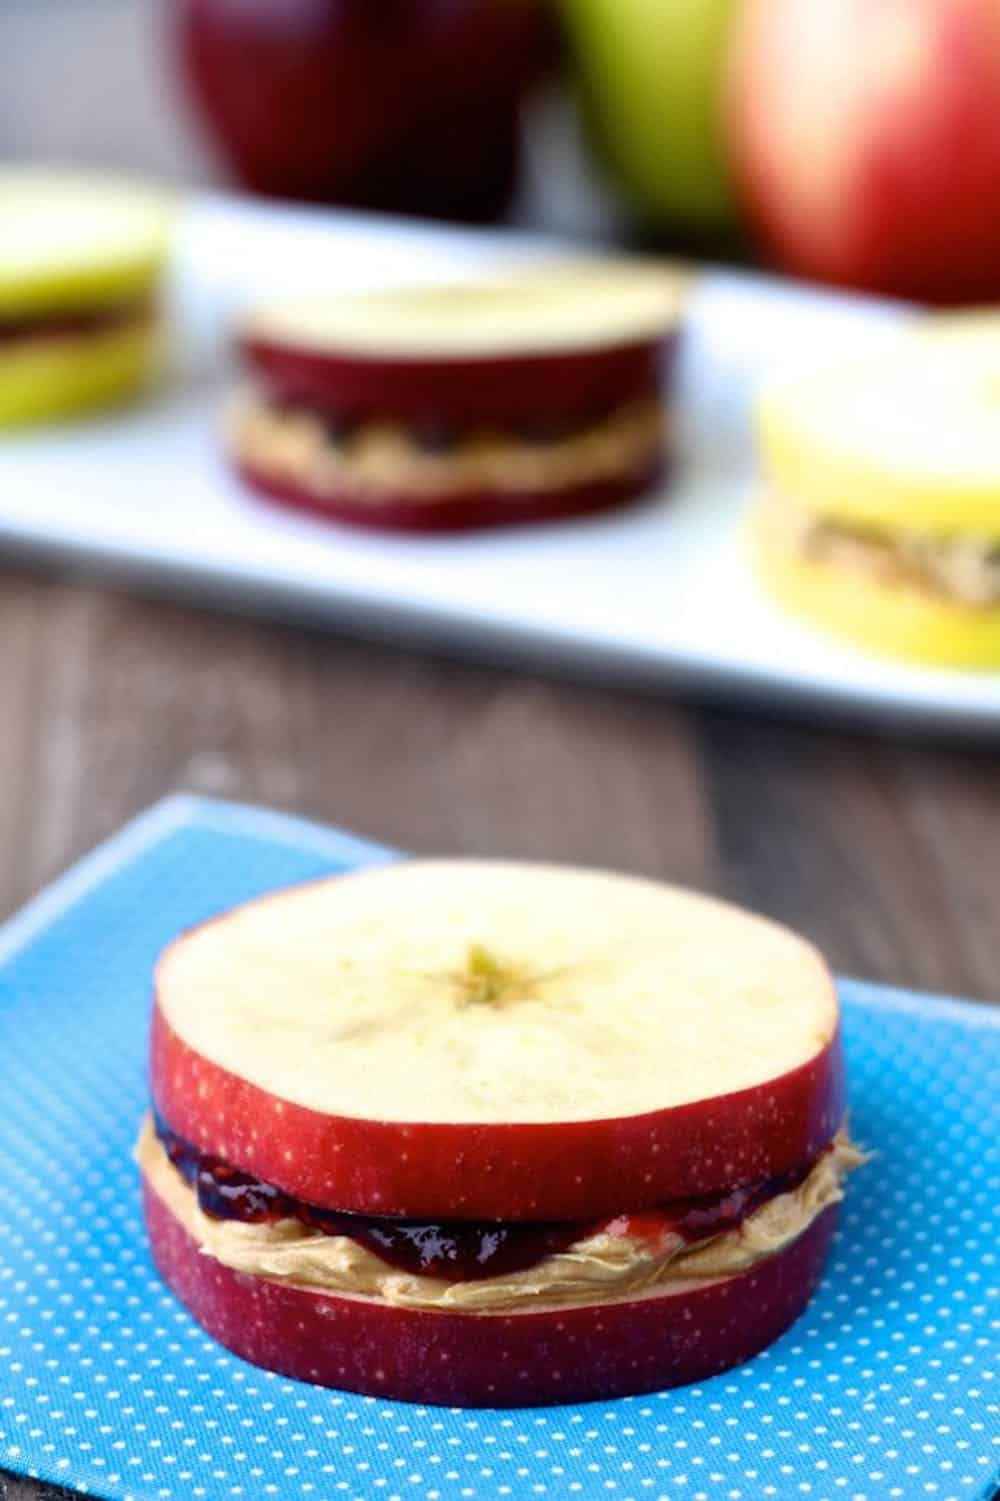 Apple pb&j sandwich